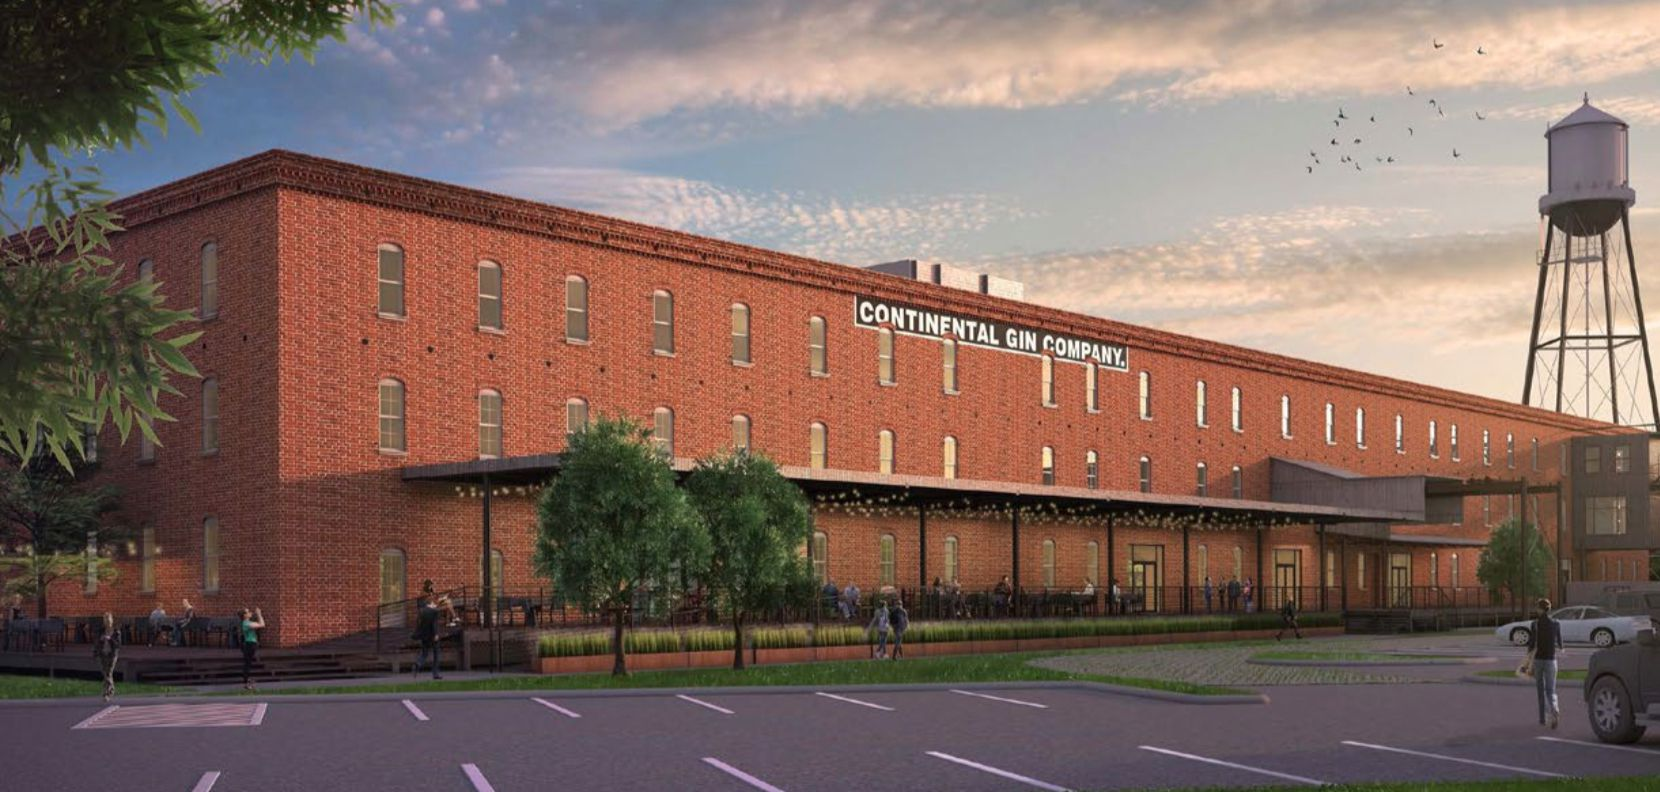 Redevelopment plans for the Continental Gin Co. building include office and retail space.